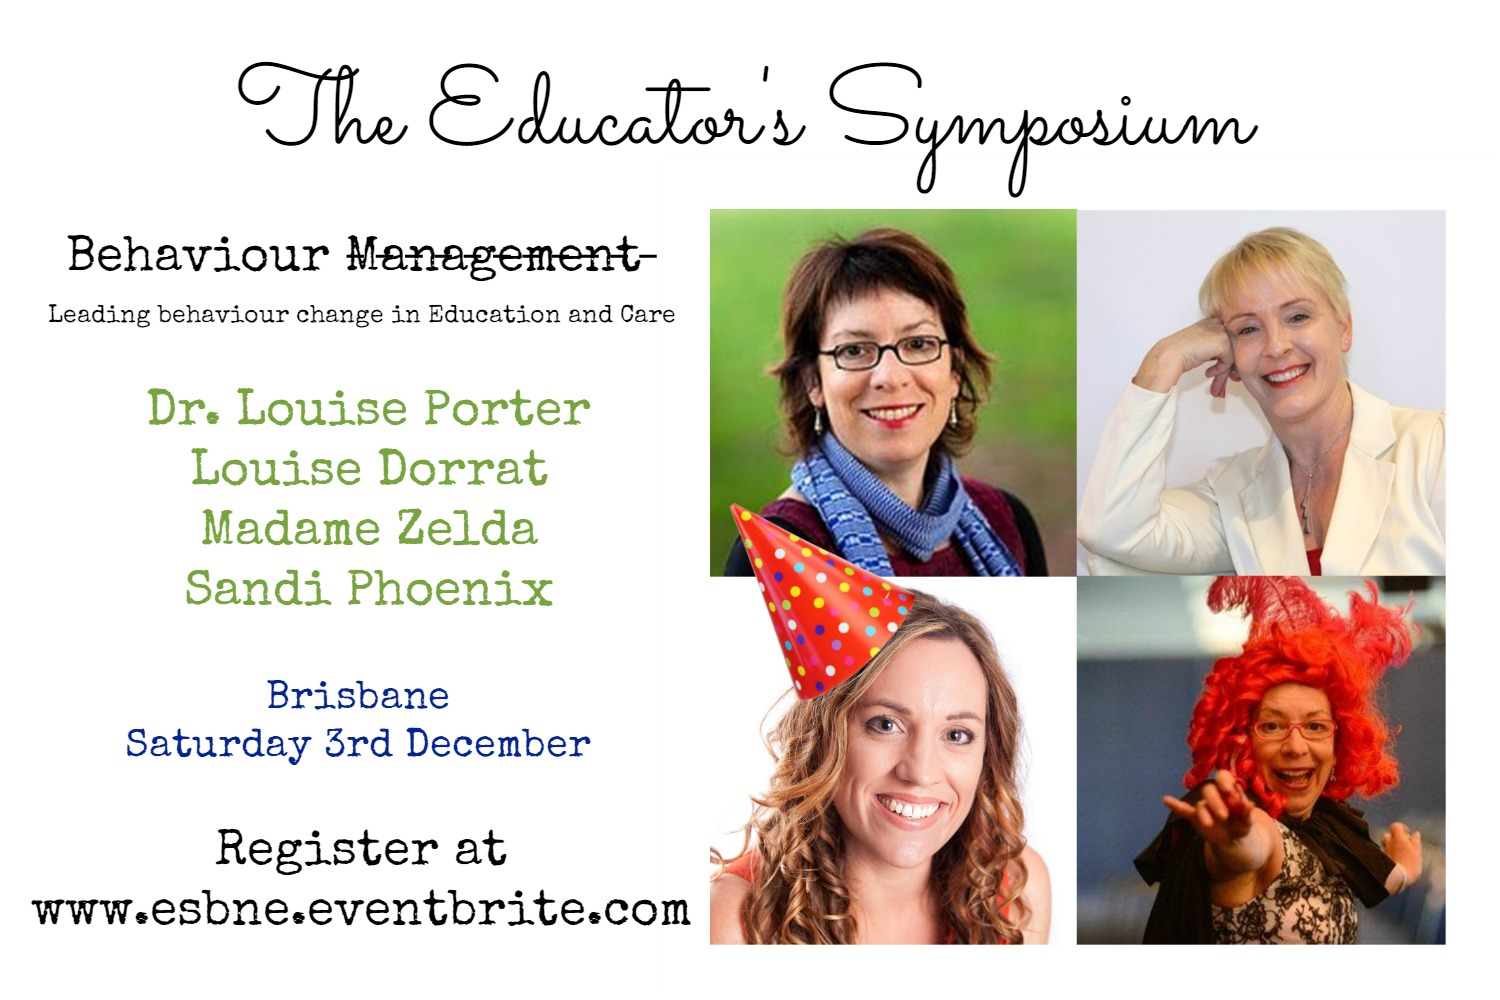 Flyer for Educator's Symposium - Speakers include Louise Dorrat, Louise Porter and Sandi Phoenix